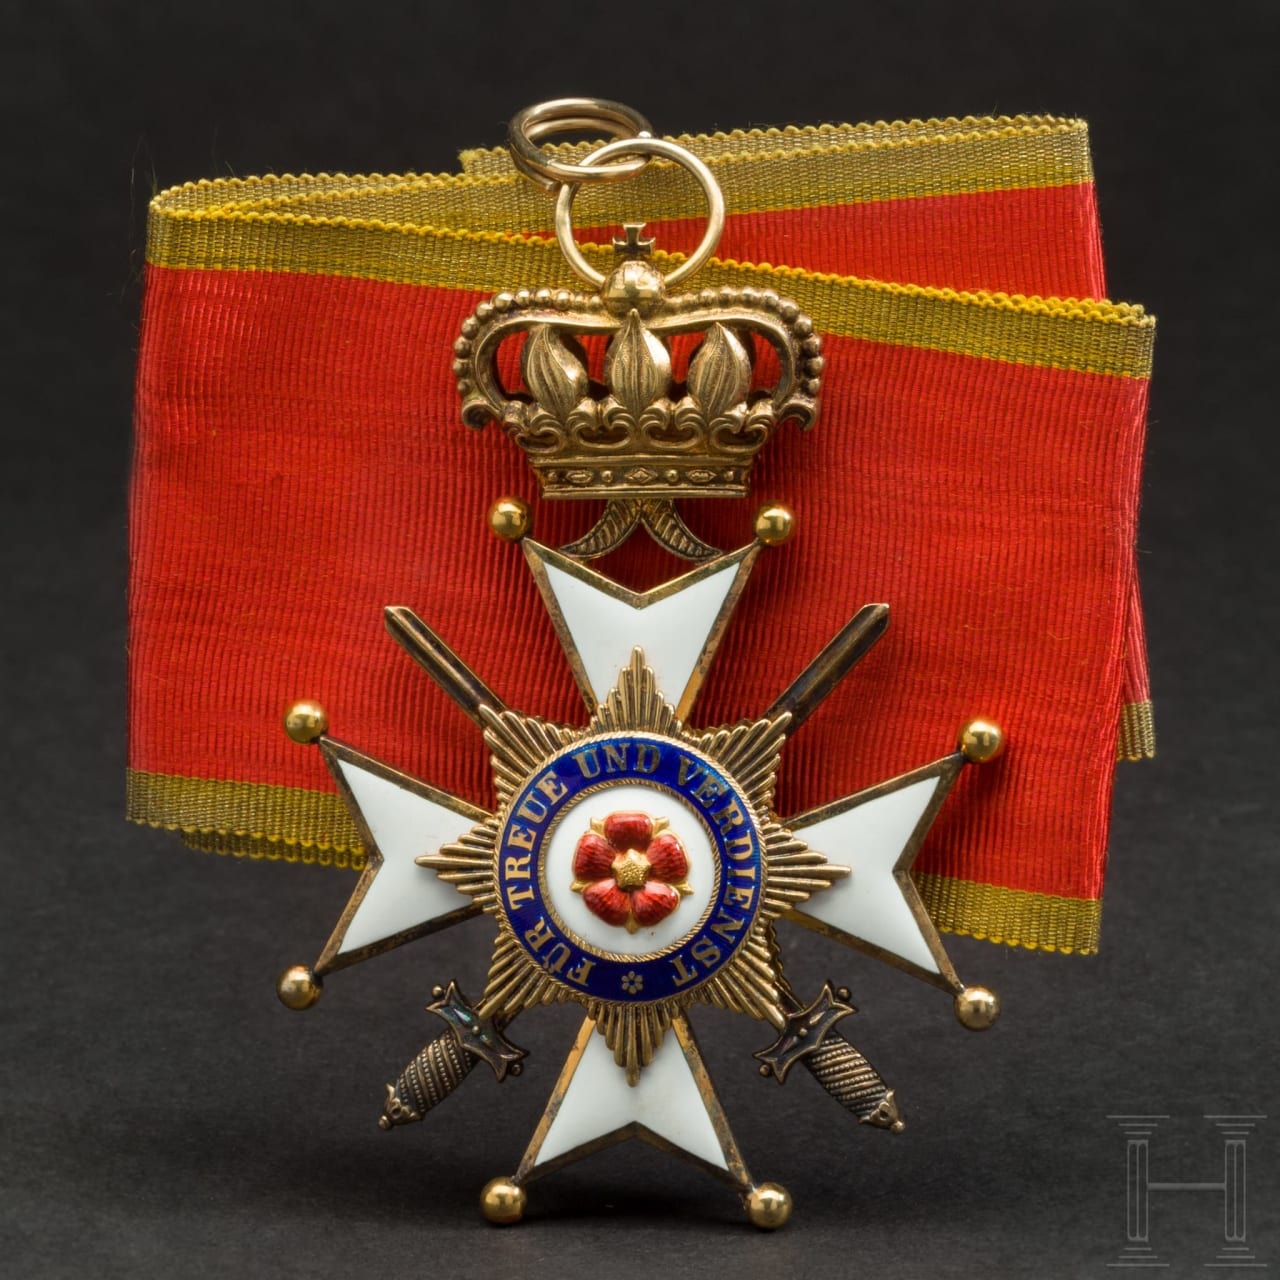 Wilhelm Freiherr von Leonrod - a Cross 1st Class with Swords of the Lippe-Detmold House Order Cross of Honour 1918 in the presentation case